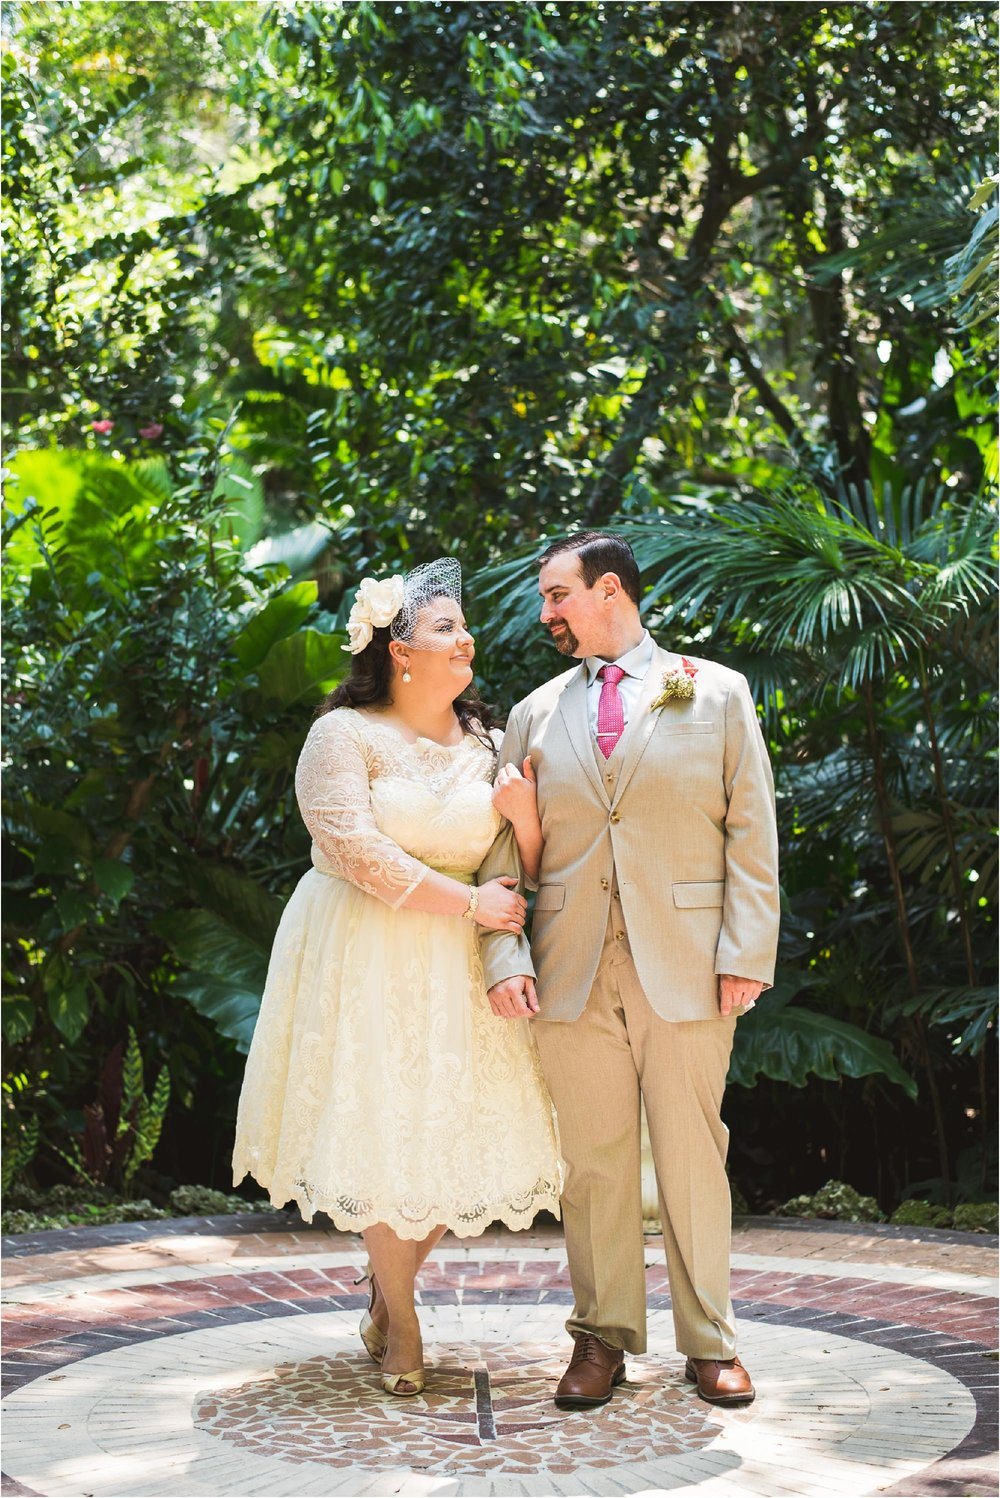 outdoor-rustic-pincrest-gardens-wedding-miami-photographer-jessenia-gonzalez_1015.jpg